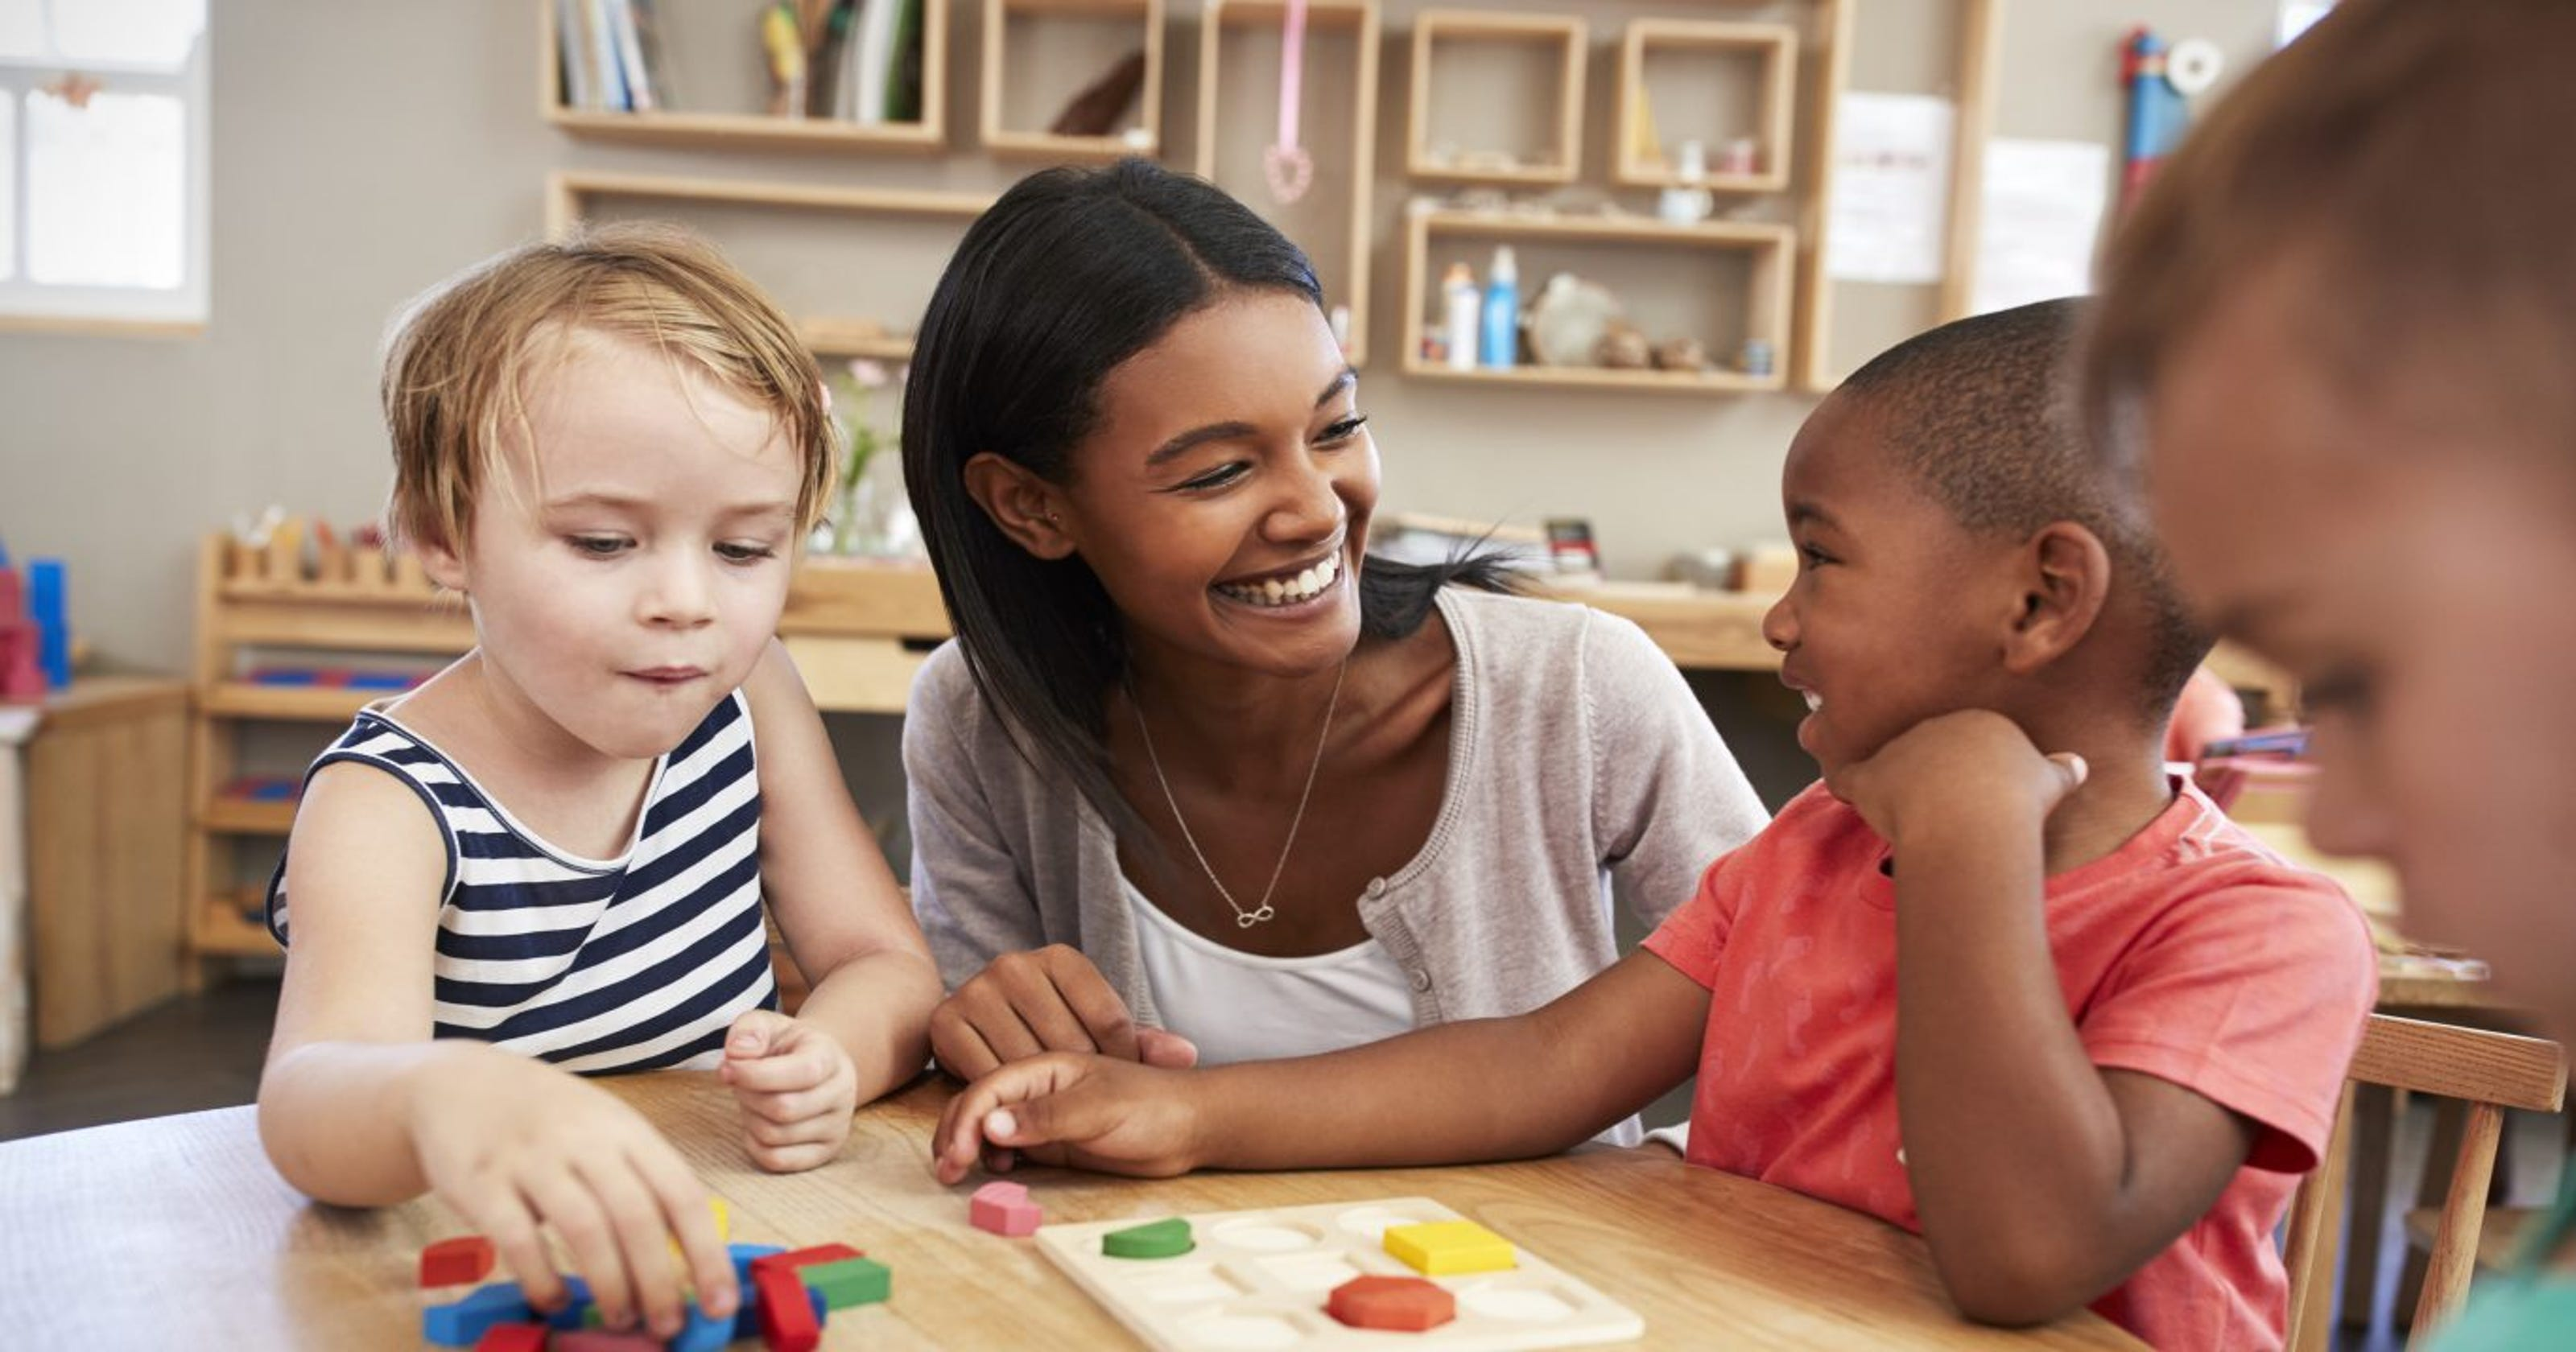 Child care costs: Which county is most expensive in your state?